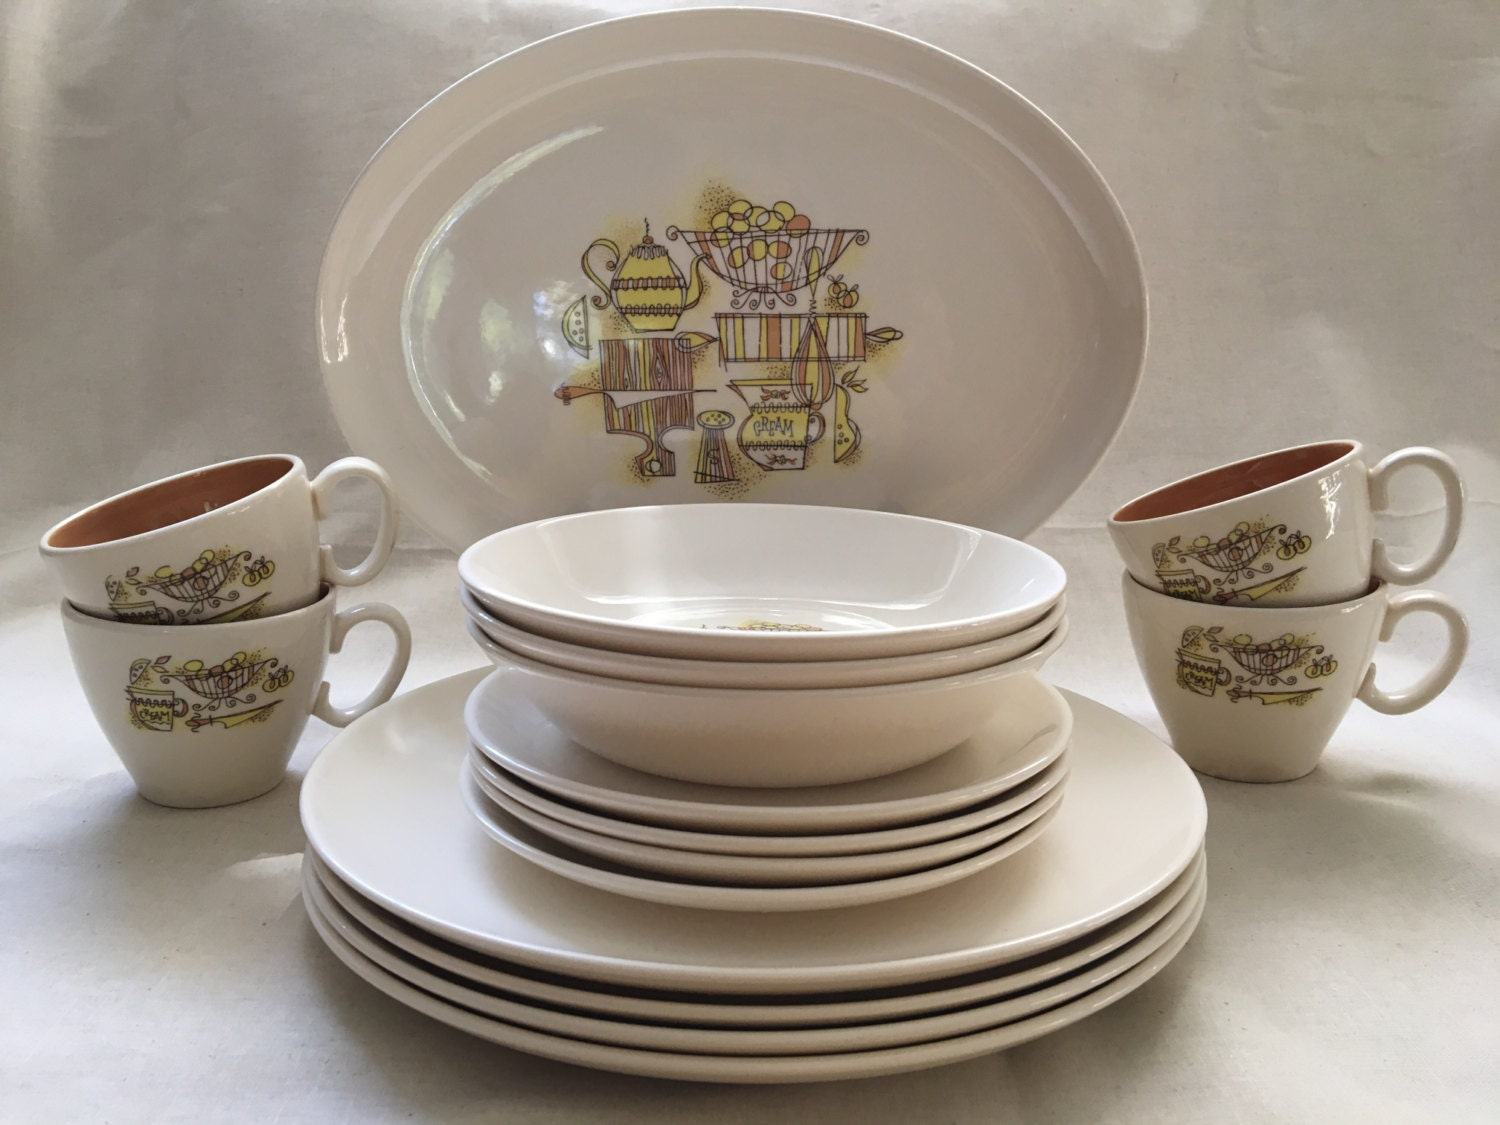 taylor smith taylor dishes mid modern dishes vintage dishes -